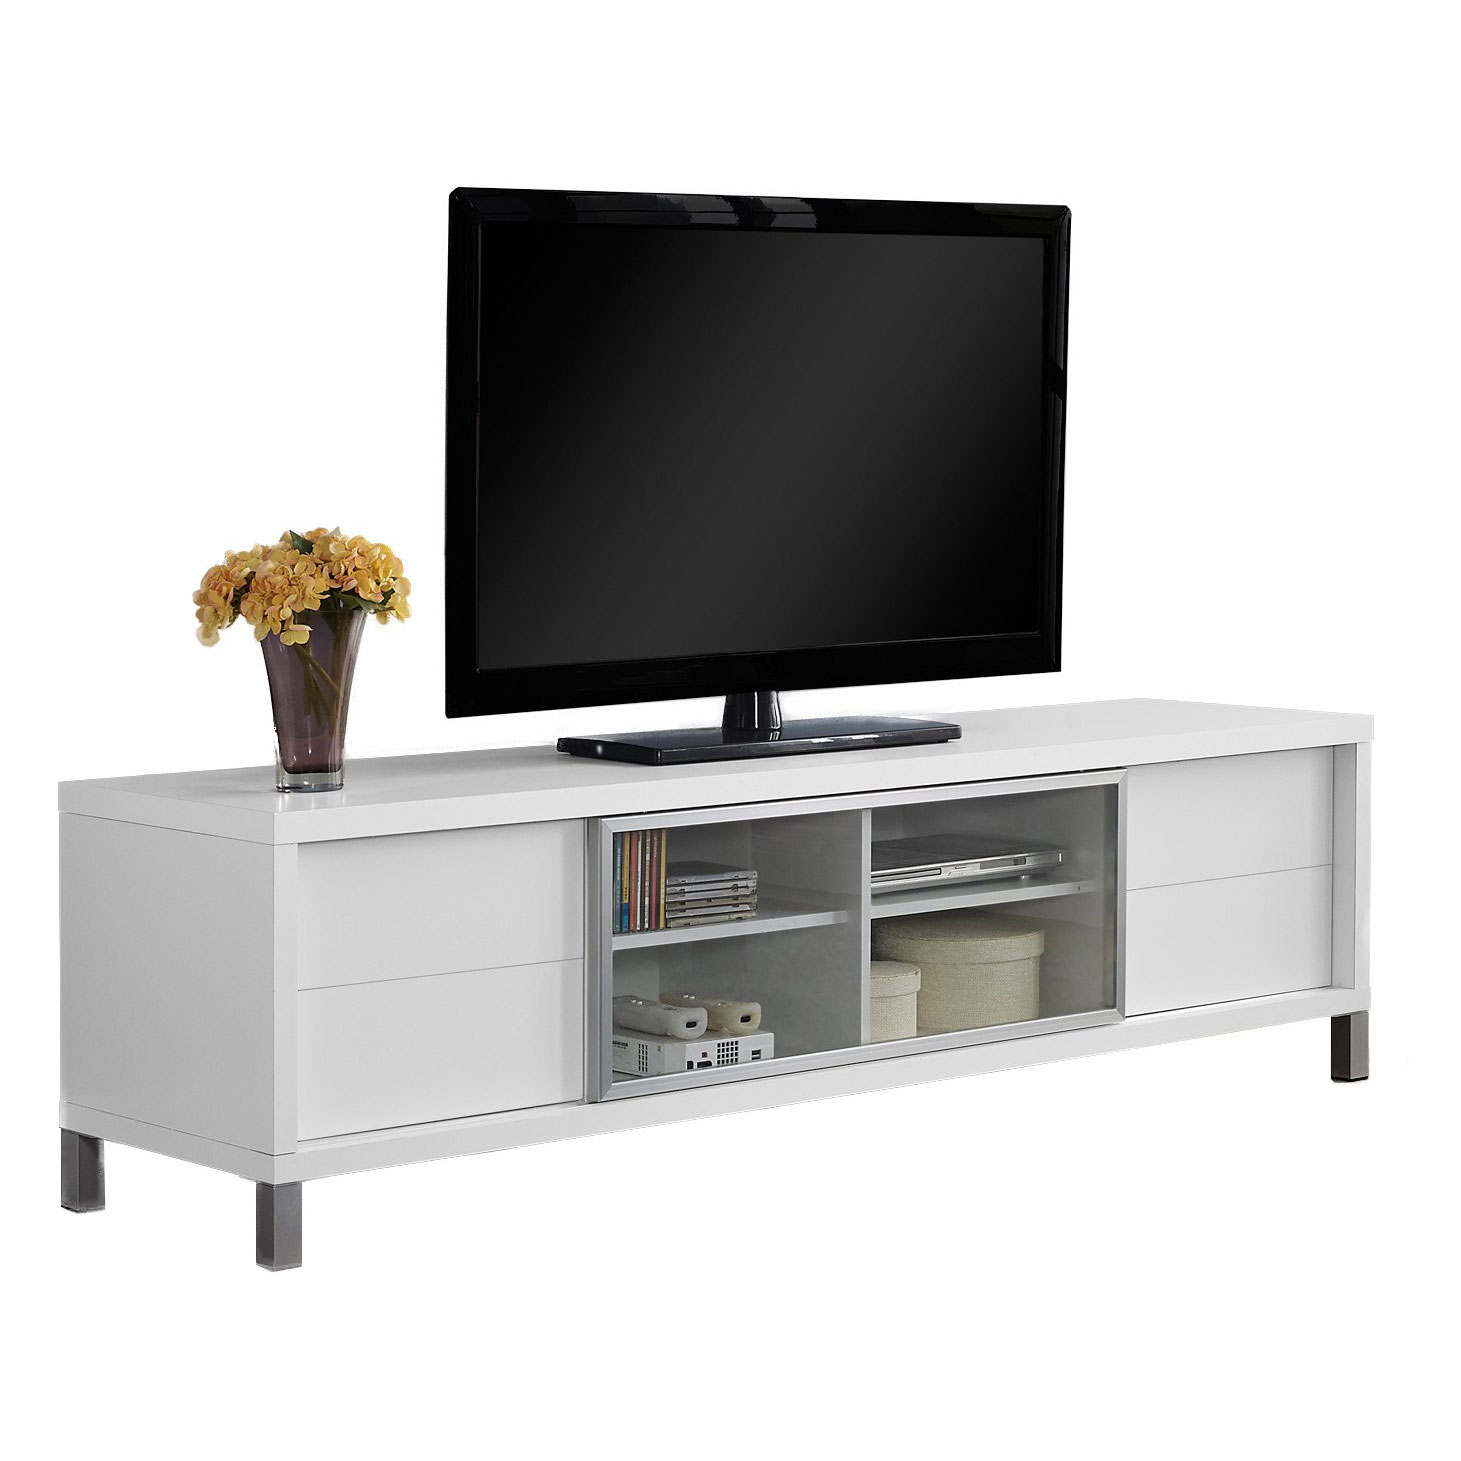 """Monarch Tv Stand White Euro Style For TVs Up To 70""""L"""